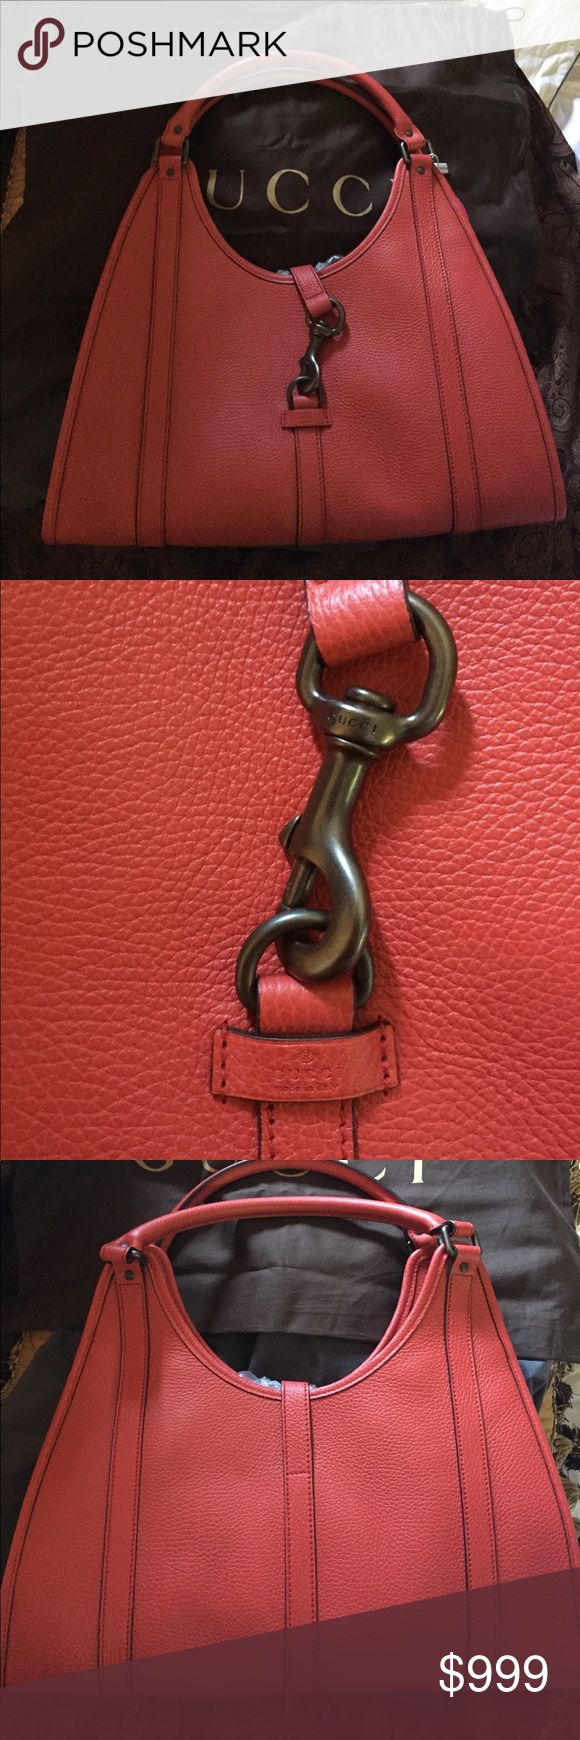 GUCCI JOY CALFSKIN LEATHER HOBO NEW factory pack GUCCI JOY RED  MEDIUM HOBO BAG horsebit clasp new with dust bag red coral Brass hardware calfskin leather Made in Italy 🇮🇹 exquisitely stitched as all Gucci products are carefully hand done from smoke free pet free home happy poshing cheers Gucci Bags Hobos